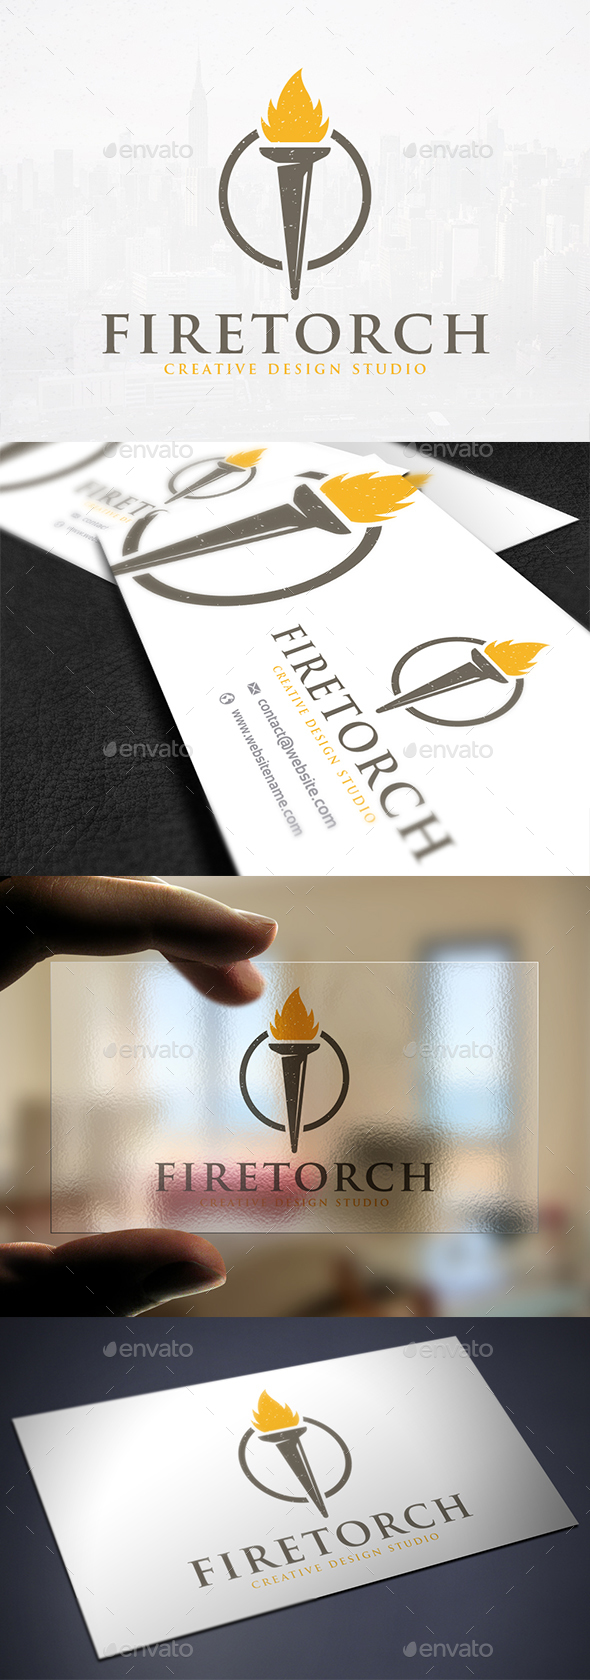 Torch Light Logo Template - Objects Logo Templates